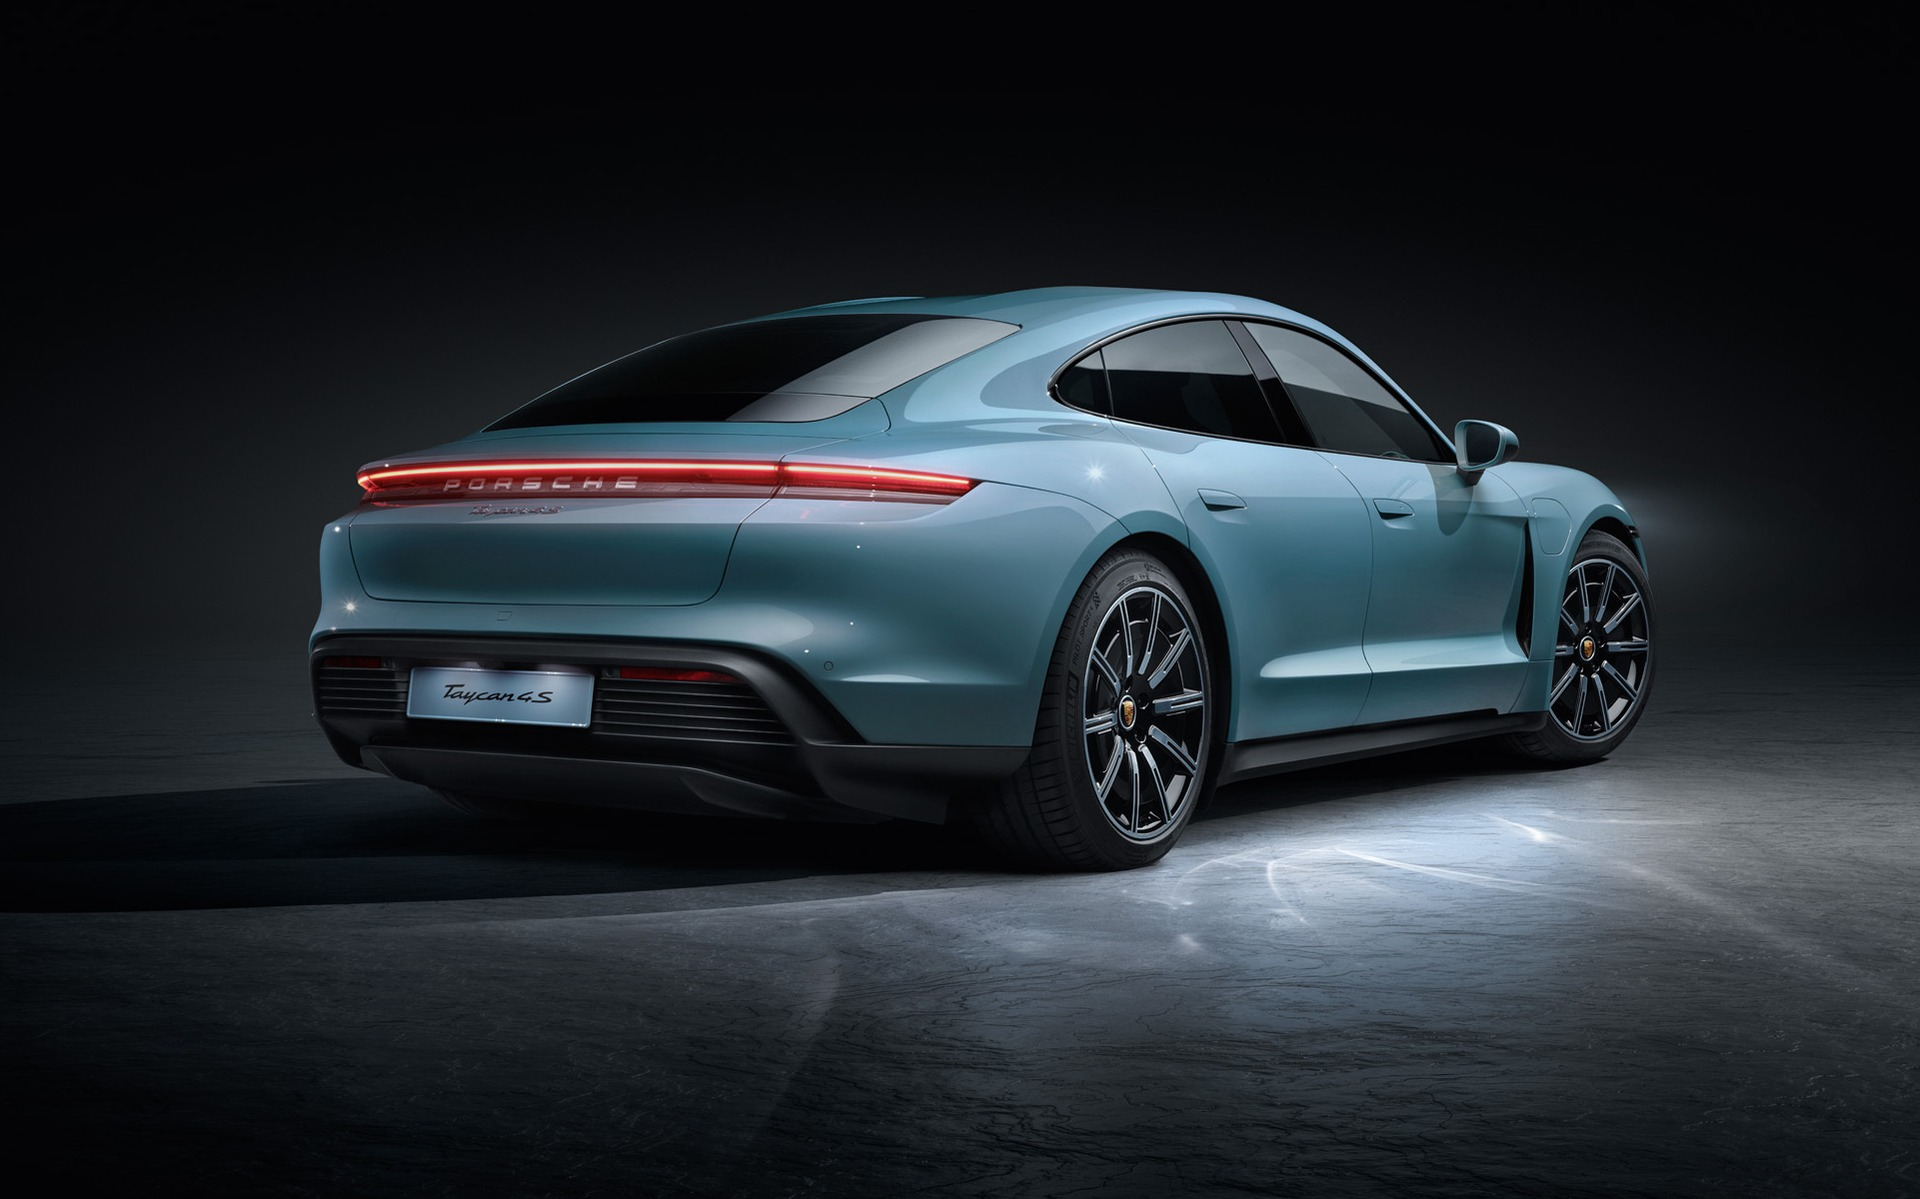 New Porsche Taycan 4s Model Is Slightly More Affordable The Car Guide